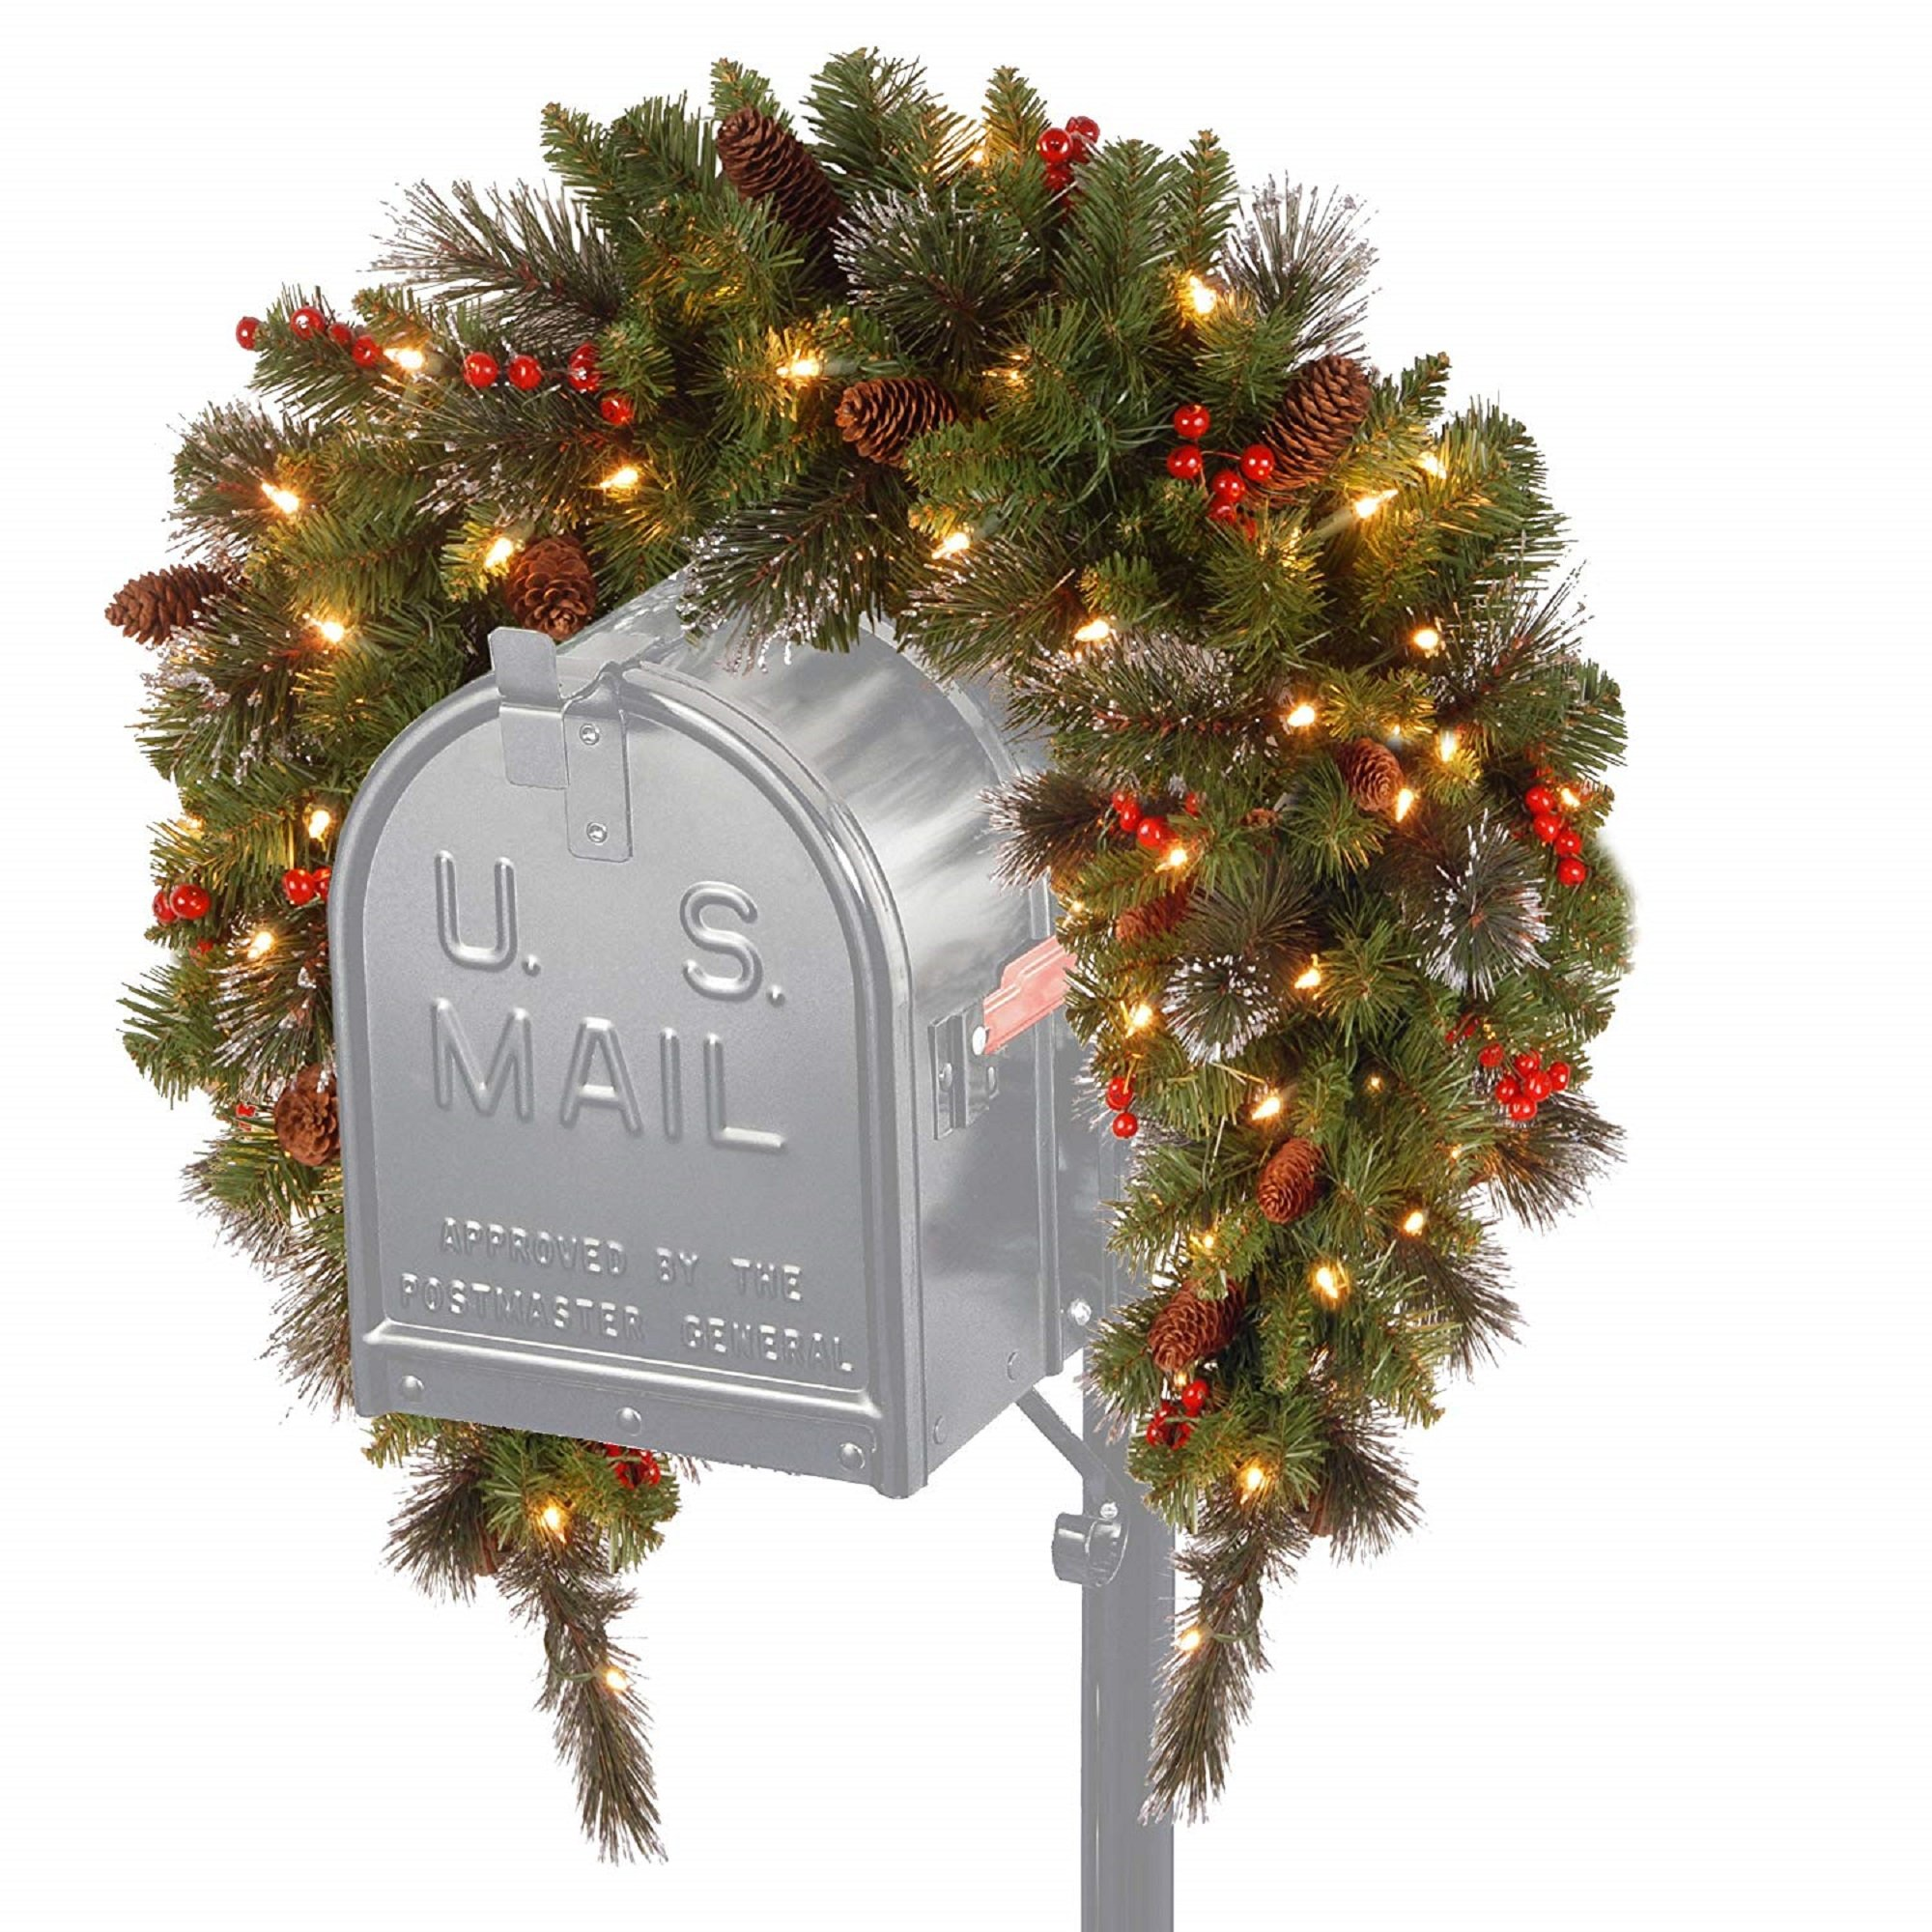 CC Christmas Decor 36'' Crestwood Spruce Mailbox Cover with Silver Bristle - Warm White LED Lights Battery Operated